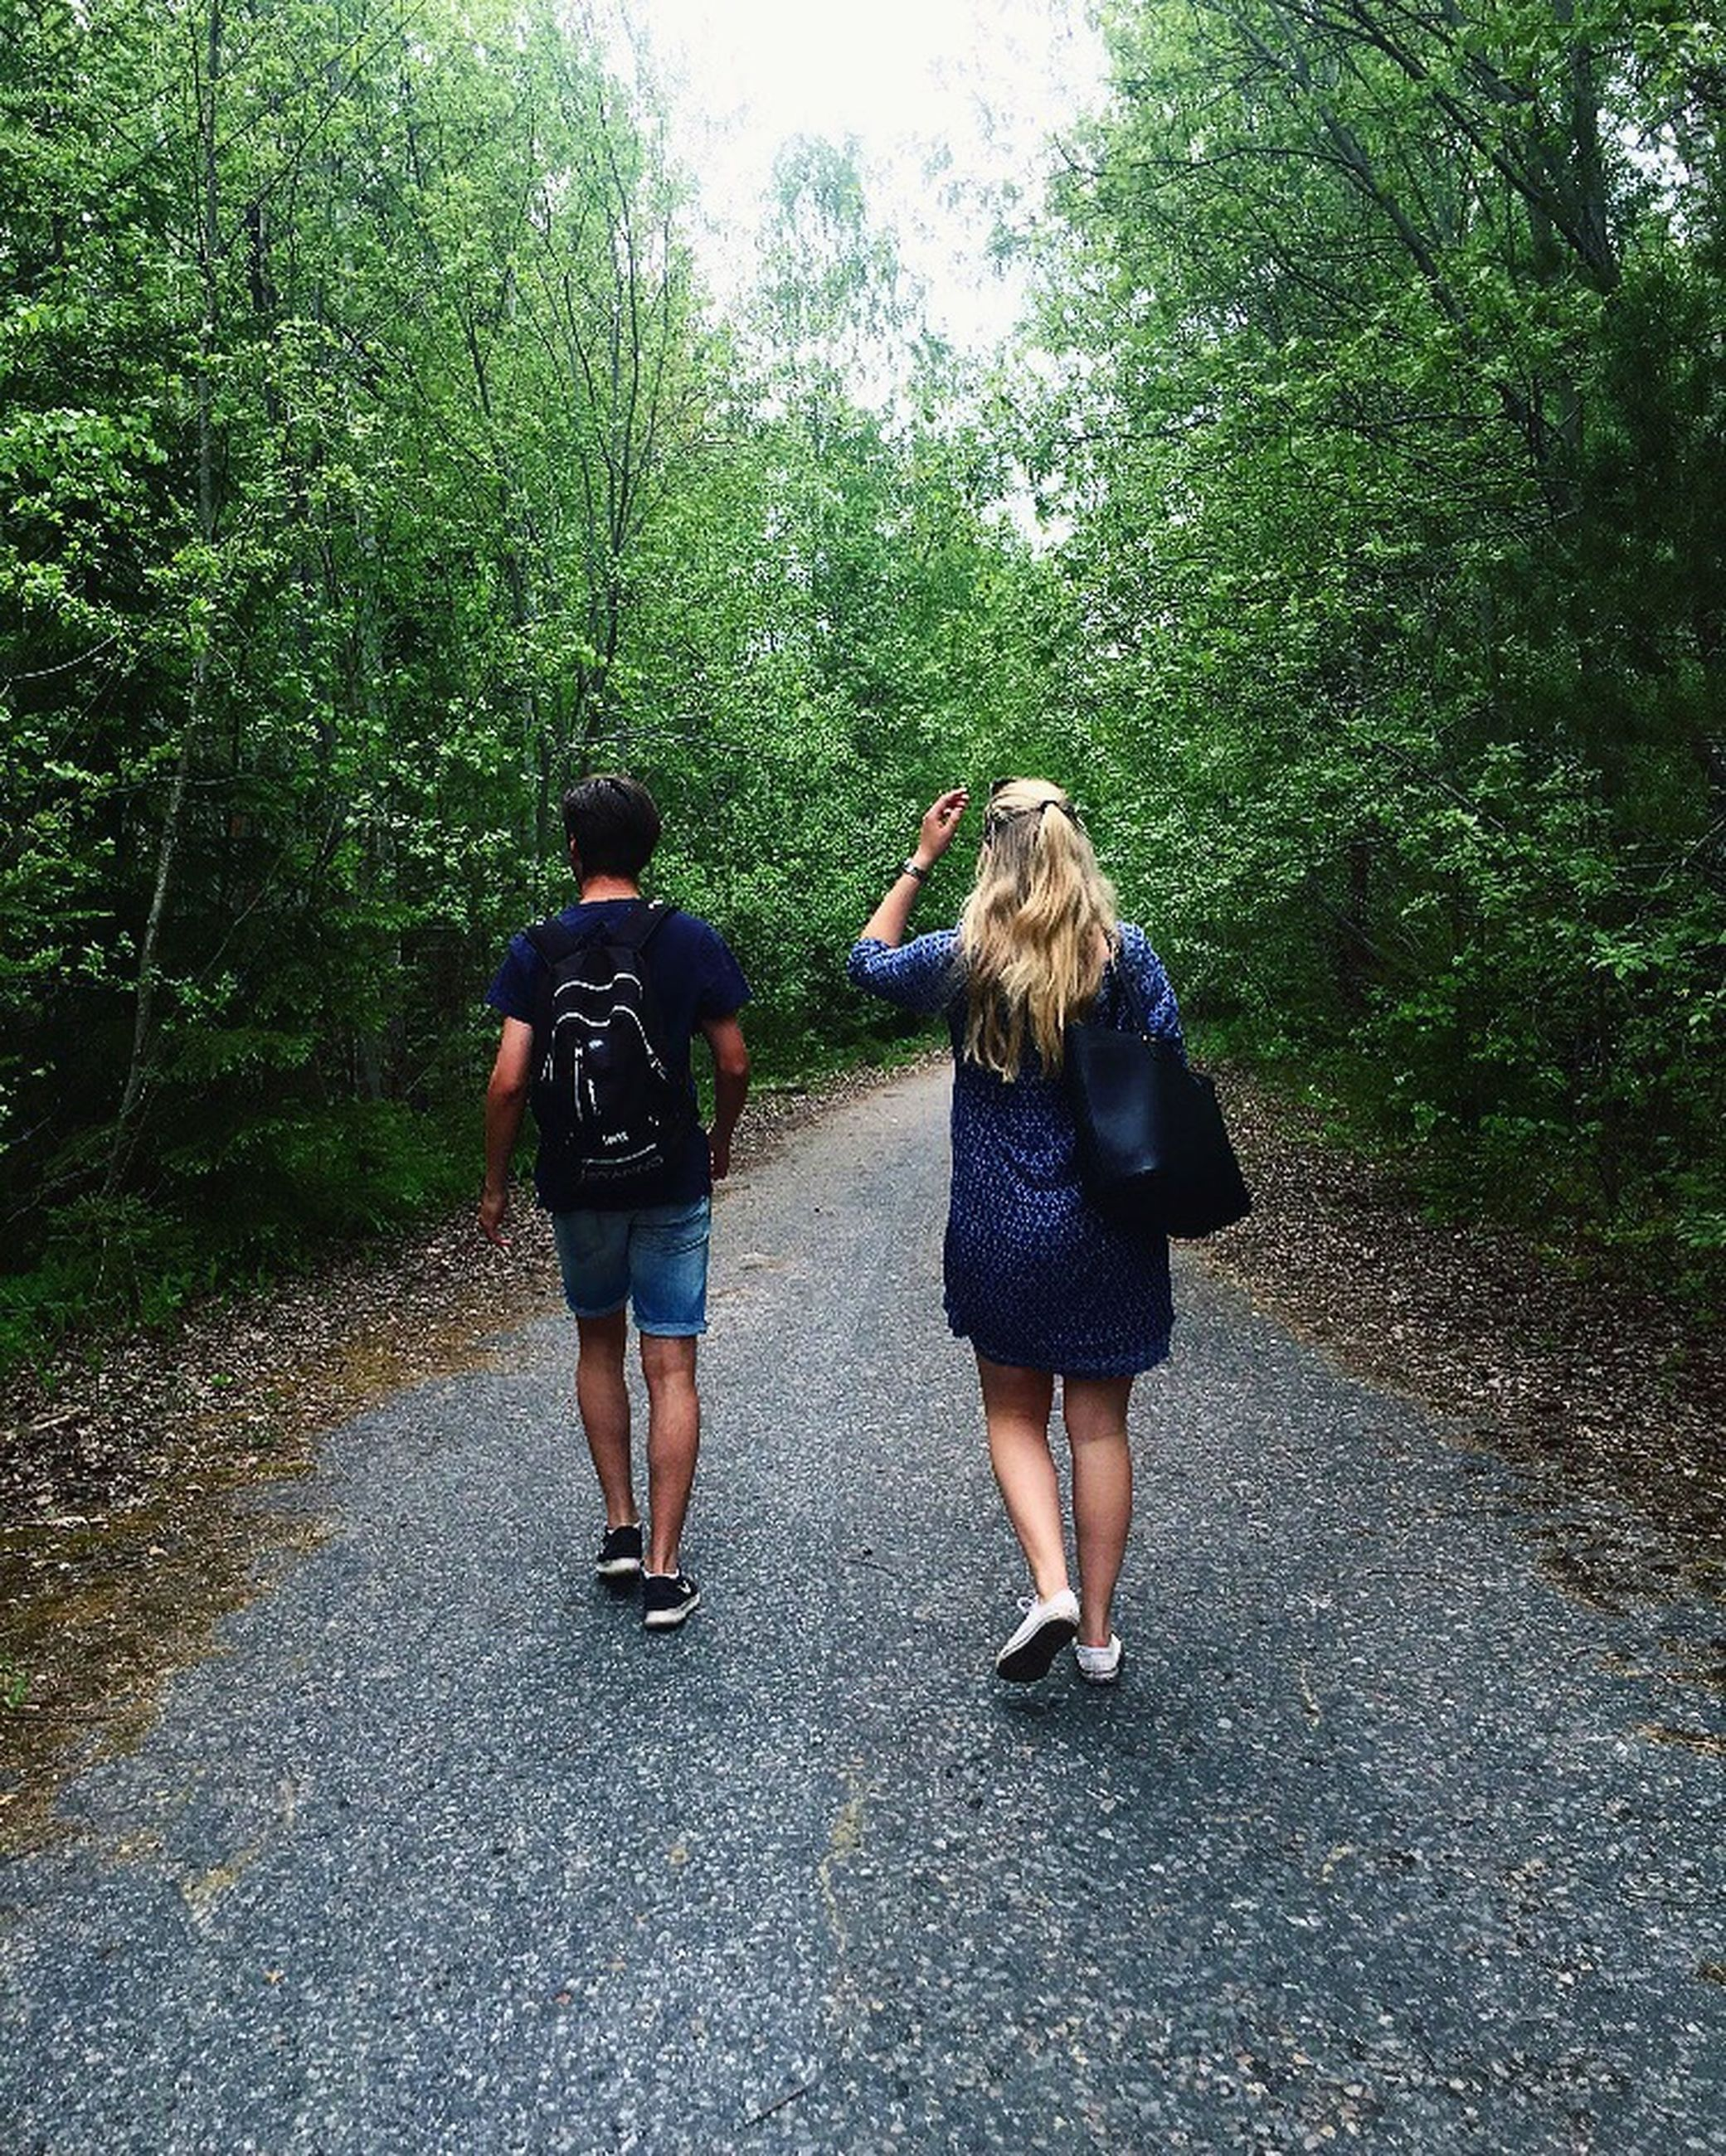 two people, rear view, tree, real people, day, leisure activity, walking, casual clothing, full length, togetherness, outdoors, standing, nature, the way forward, forest, road, lifestyles, women, friendship, young adult, sky